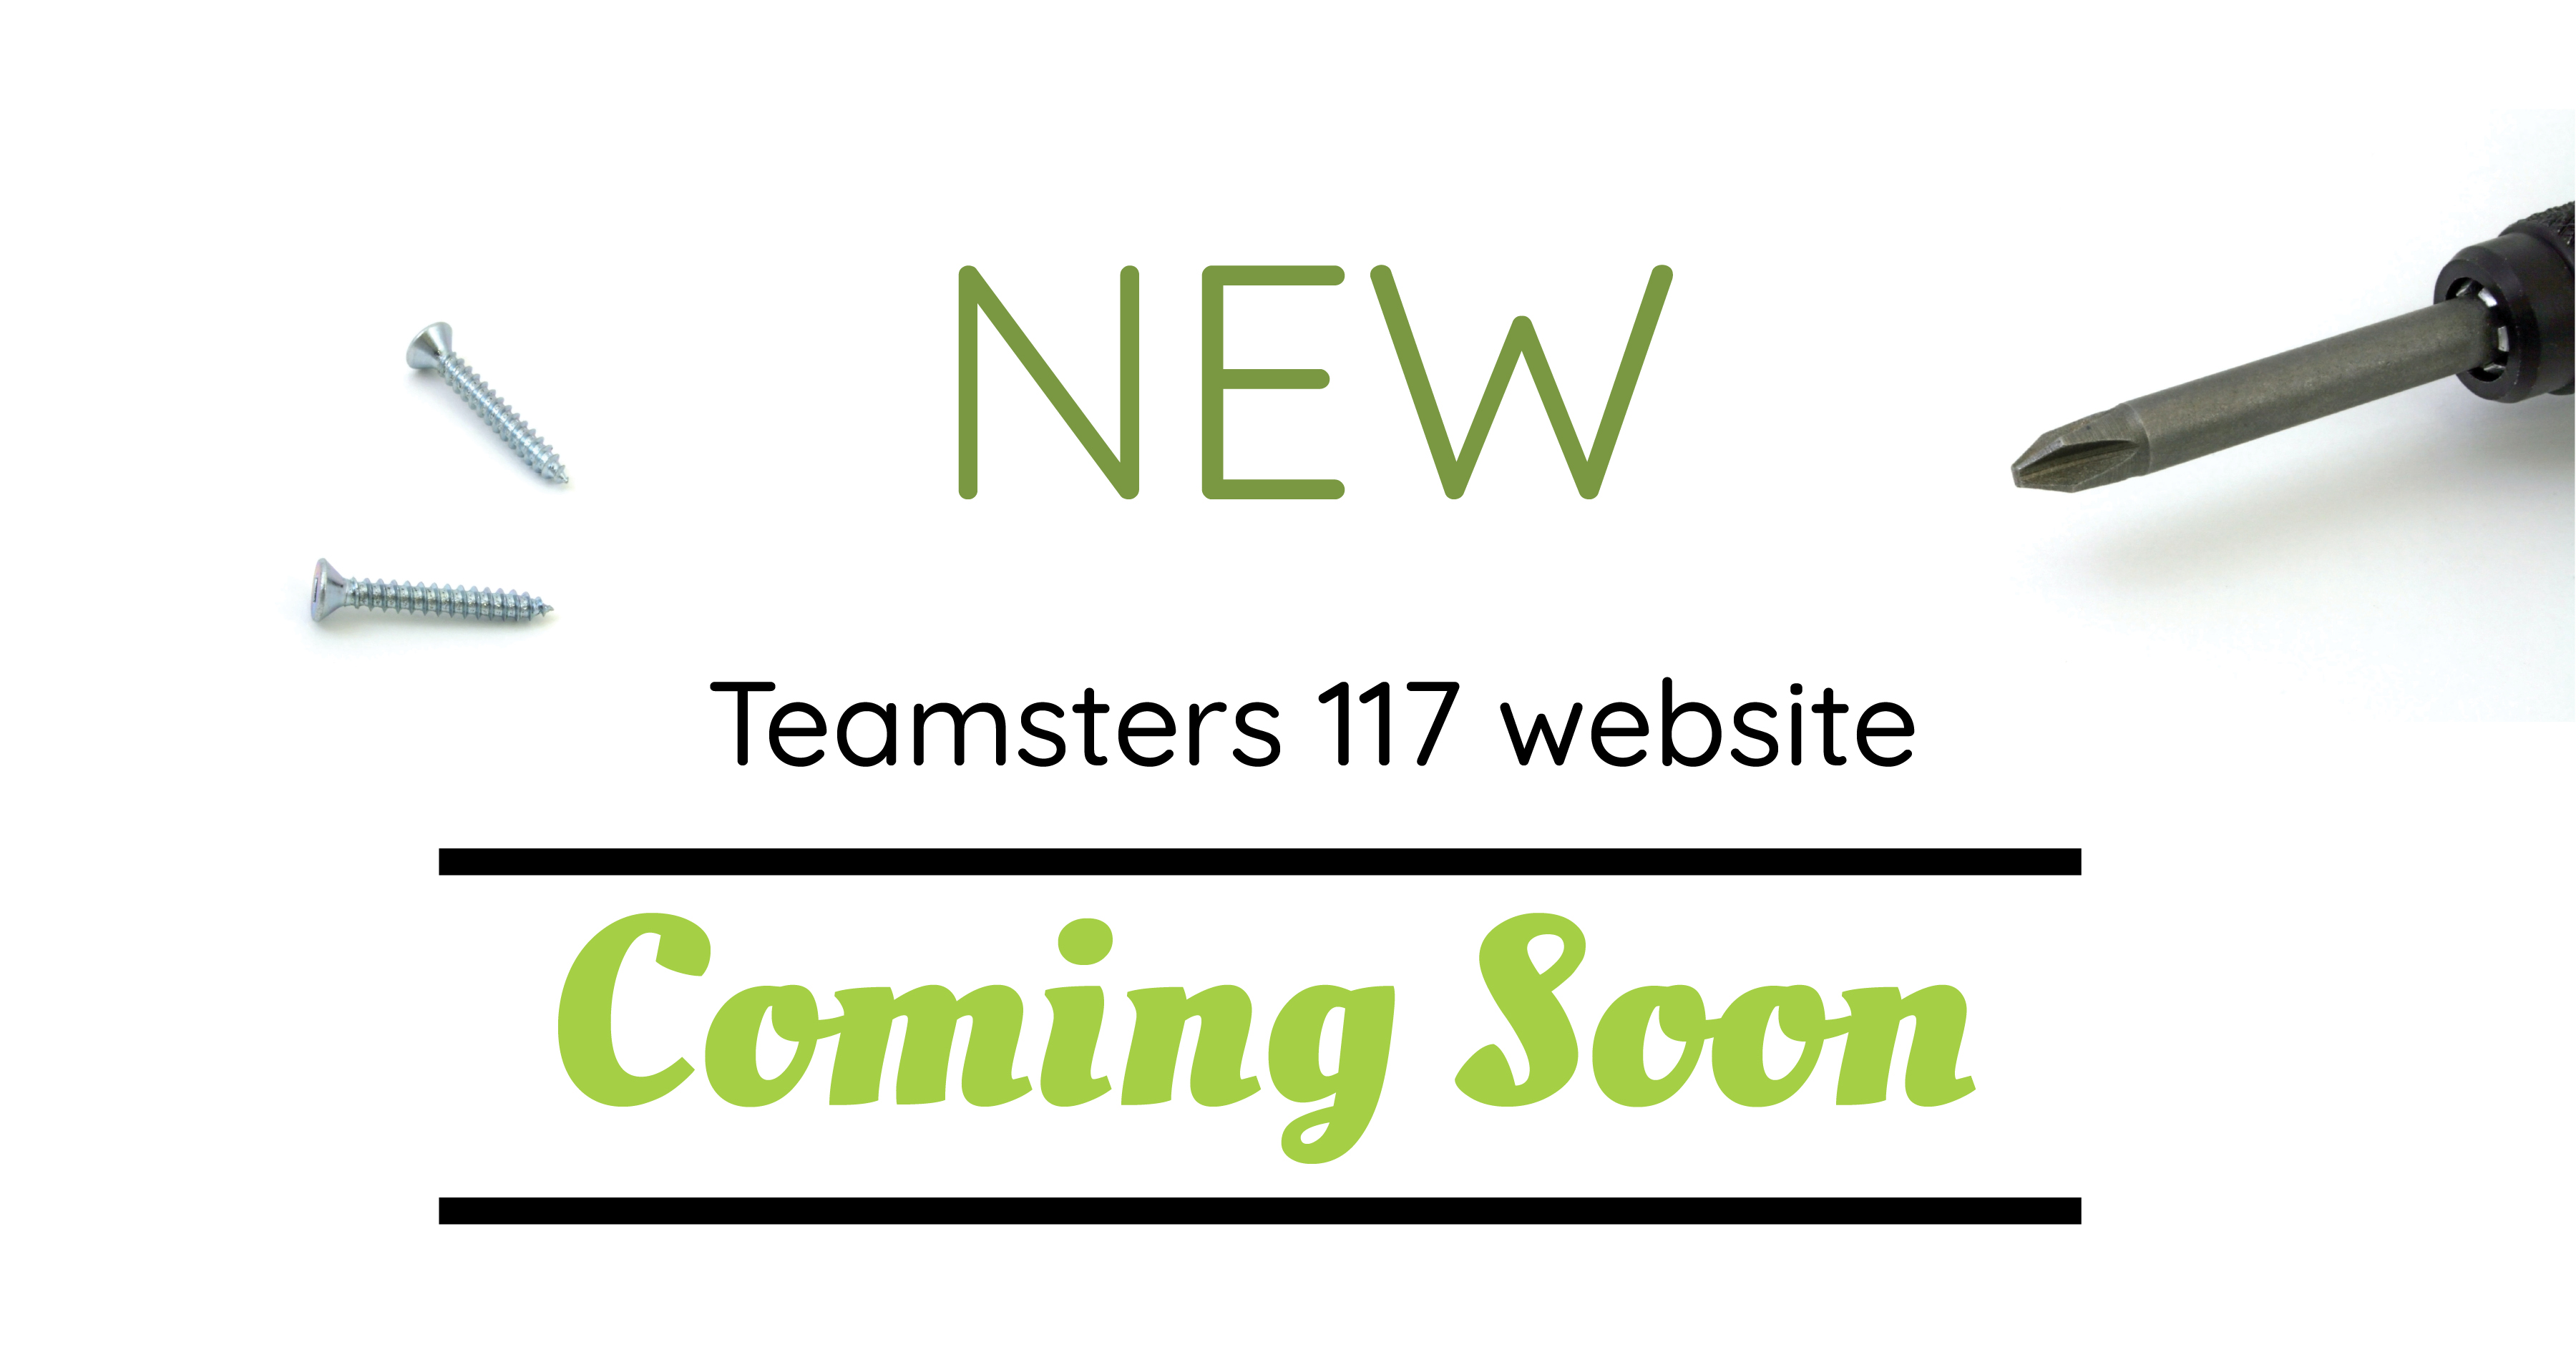 We'll be launching our new site soon - stay tuned!